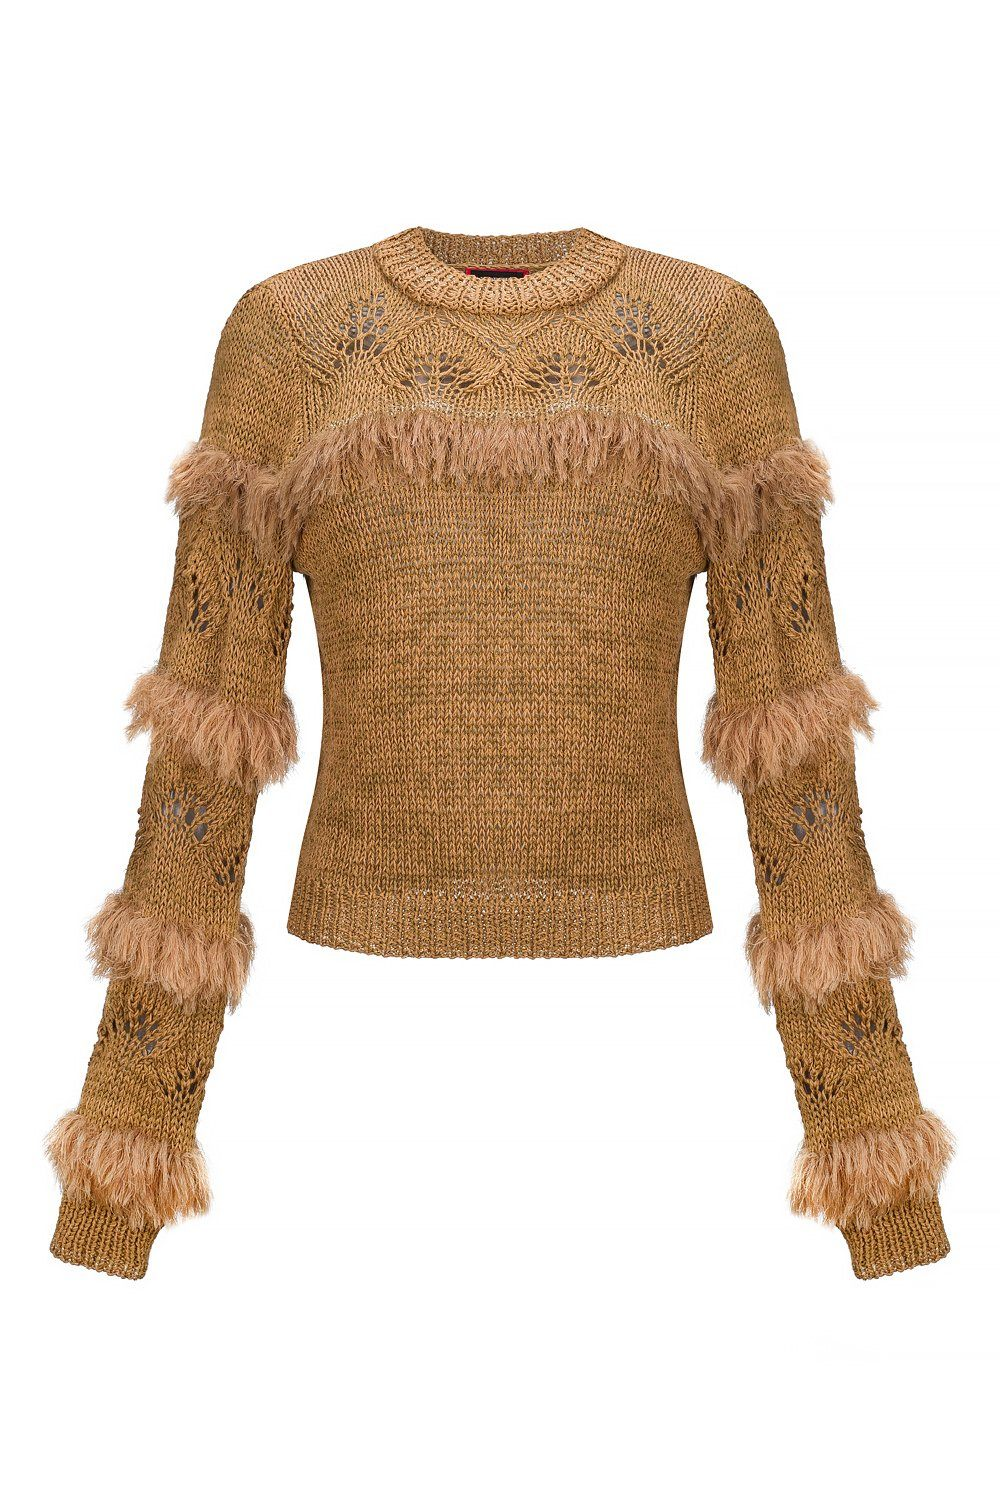 Brown Handmade Knit Swan Sweater